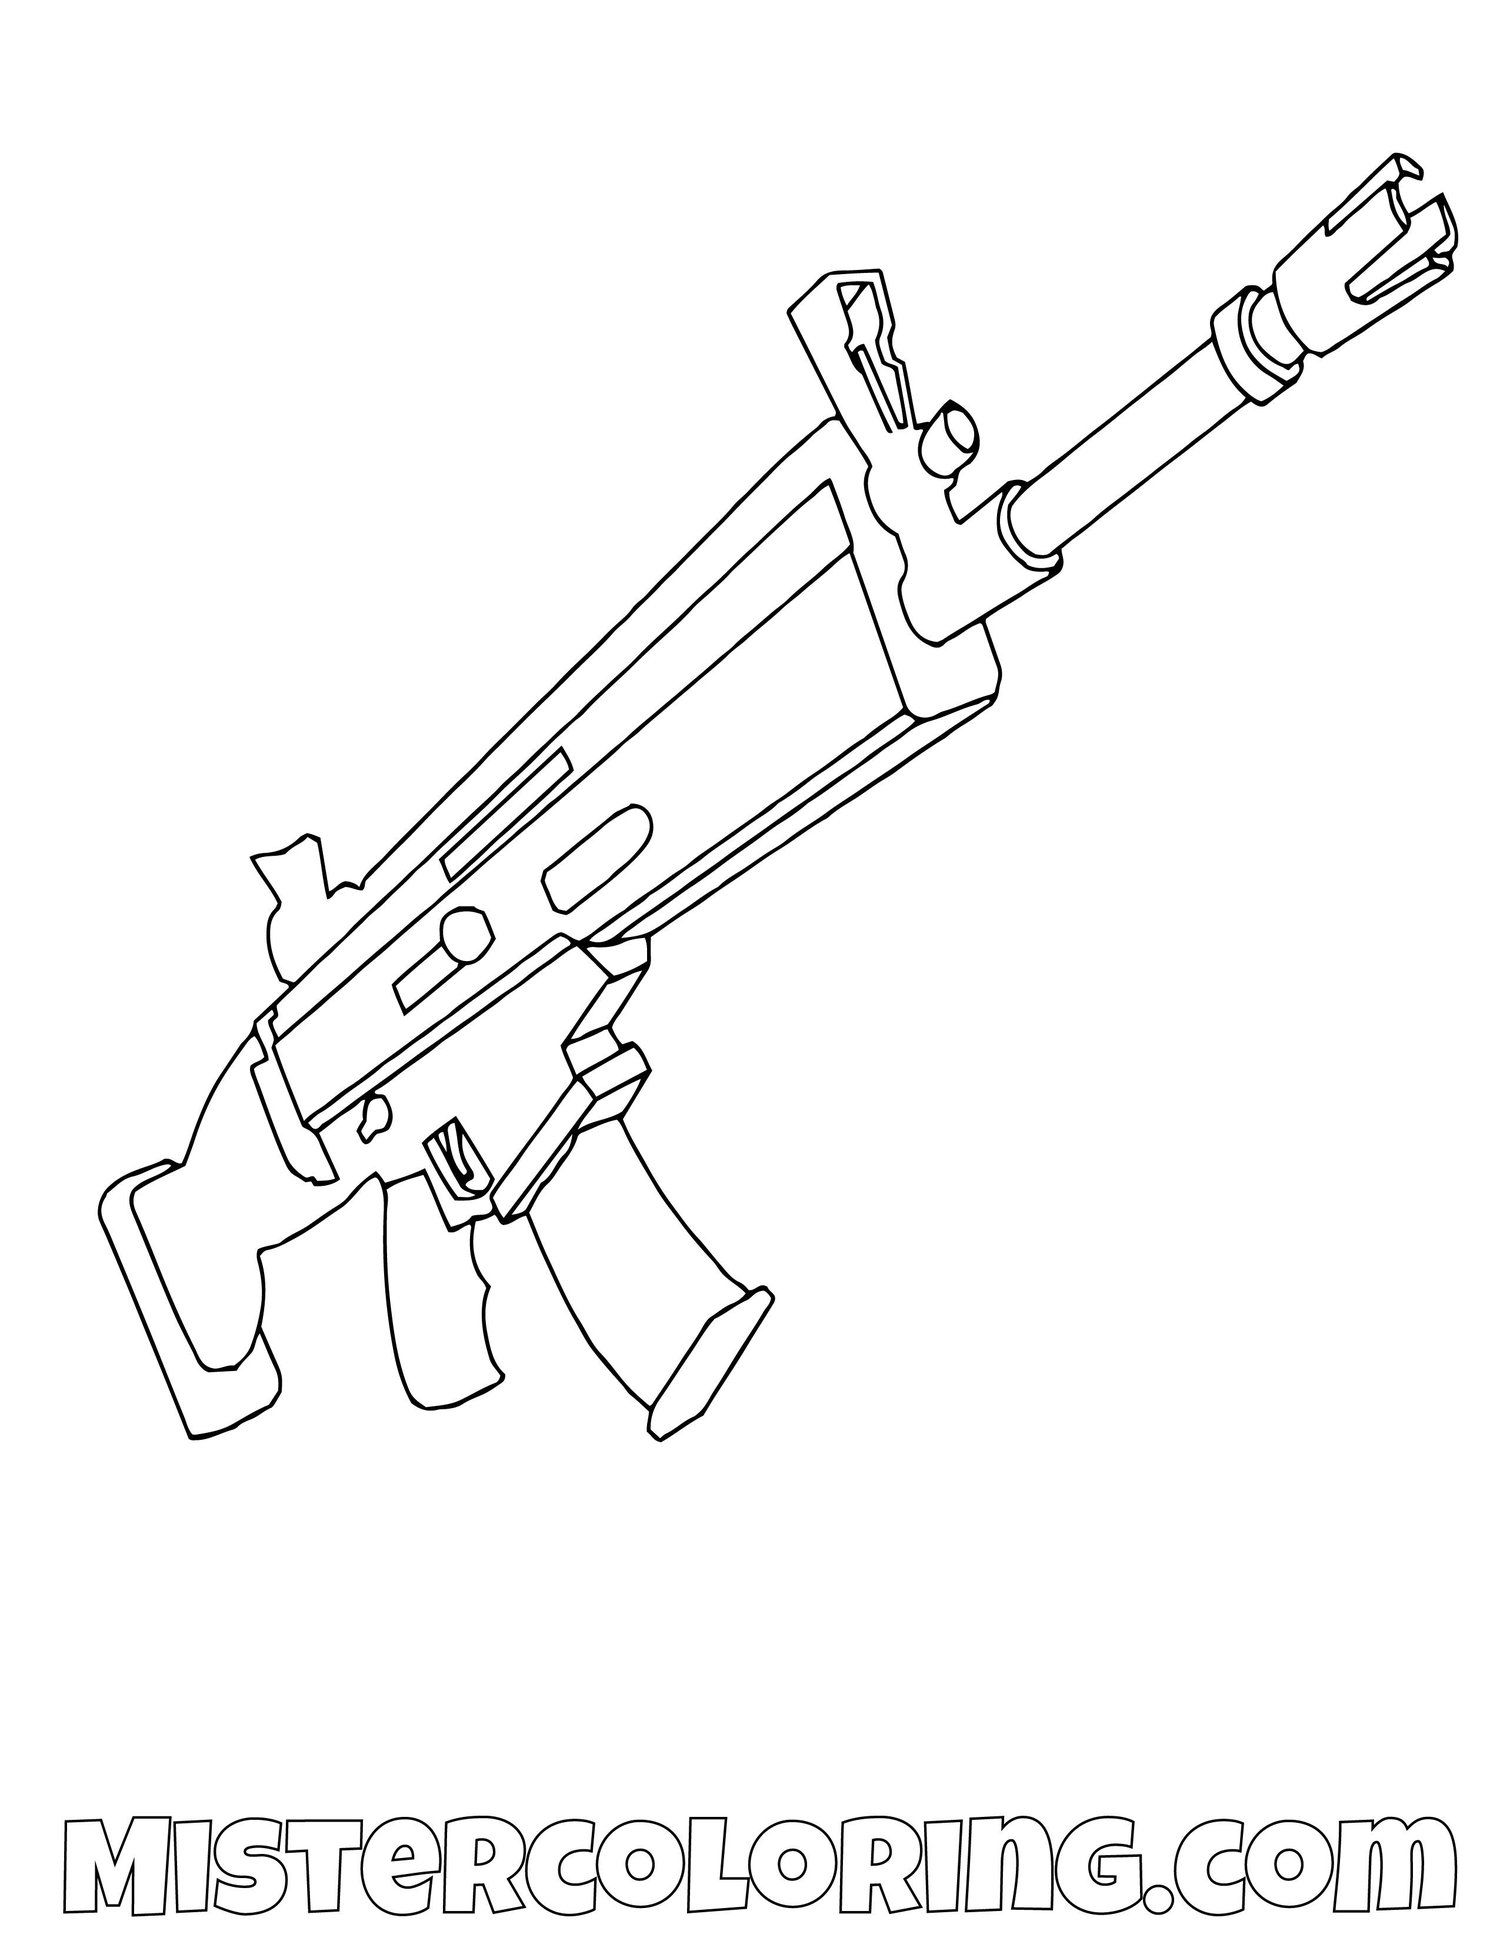 Scar Fortnite Coloring Page Coloring Pages For Kids